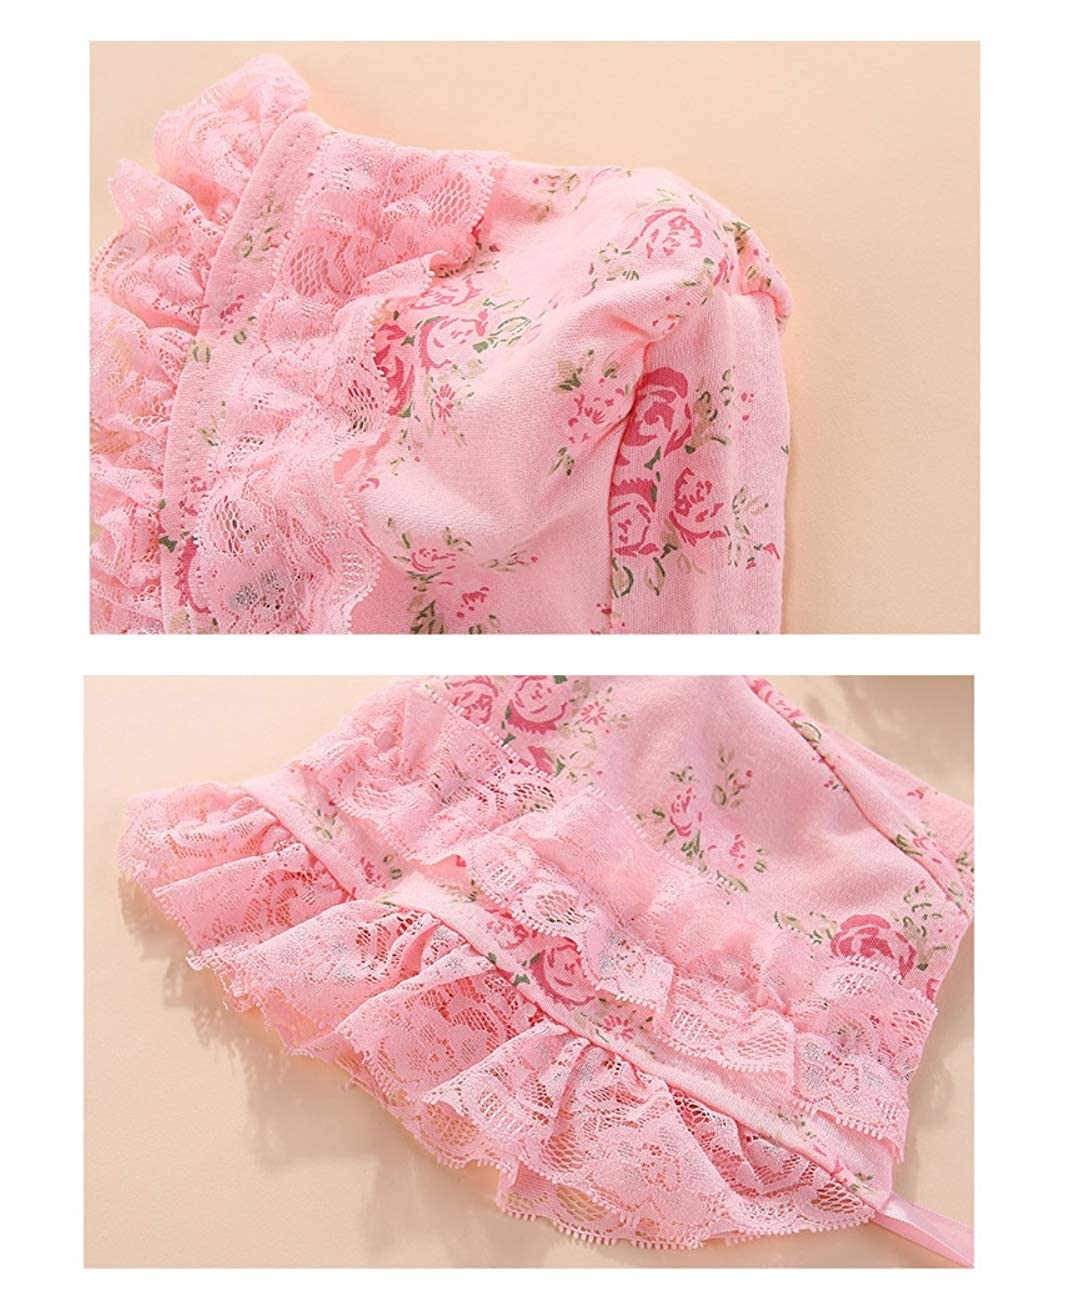 Fairy Baby Newborn Baby Girls Outfit Set 2pcs Clothes Set Lace Floral Romper with Cap